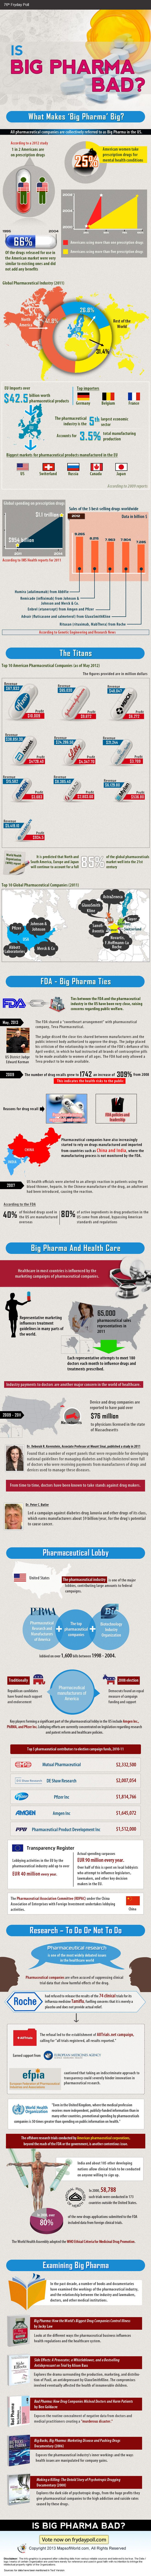 Find In-depth Review And Infographic About the Pharmaceutical Industry. Learn more about the top players in pharmaceutical industry, FDA and Big Pharma ties, big pharma and healthcare, pharmaceutical lobbying and what to do and not to do in clinical research